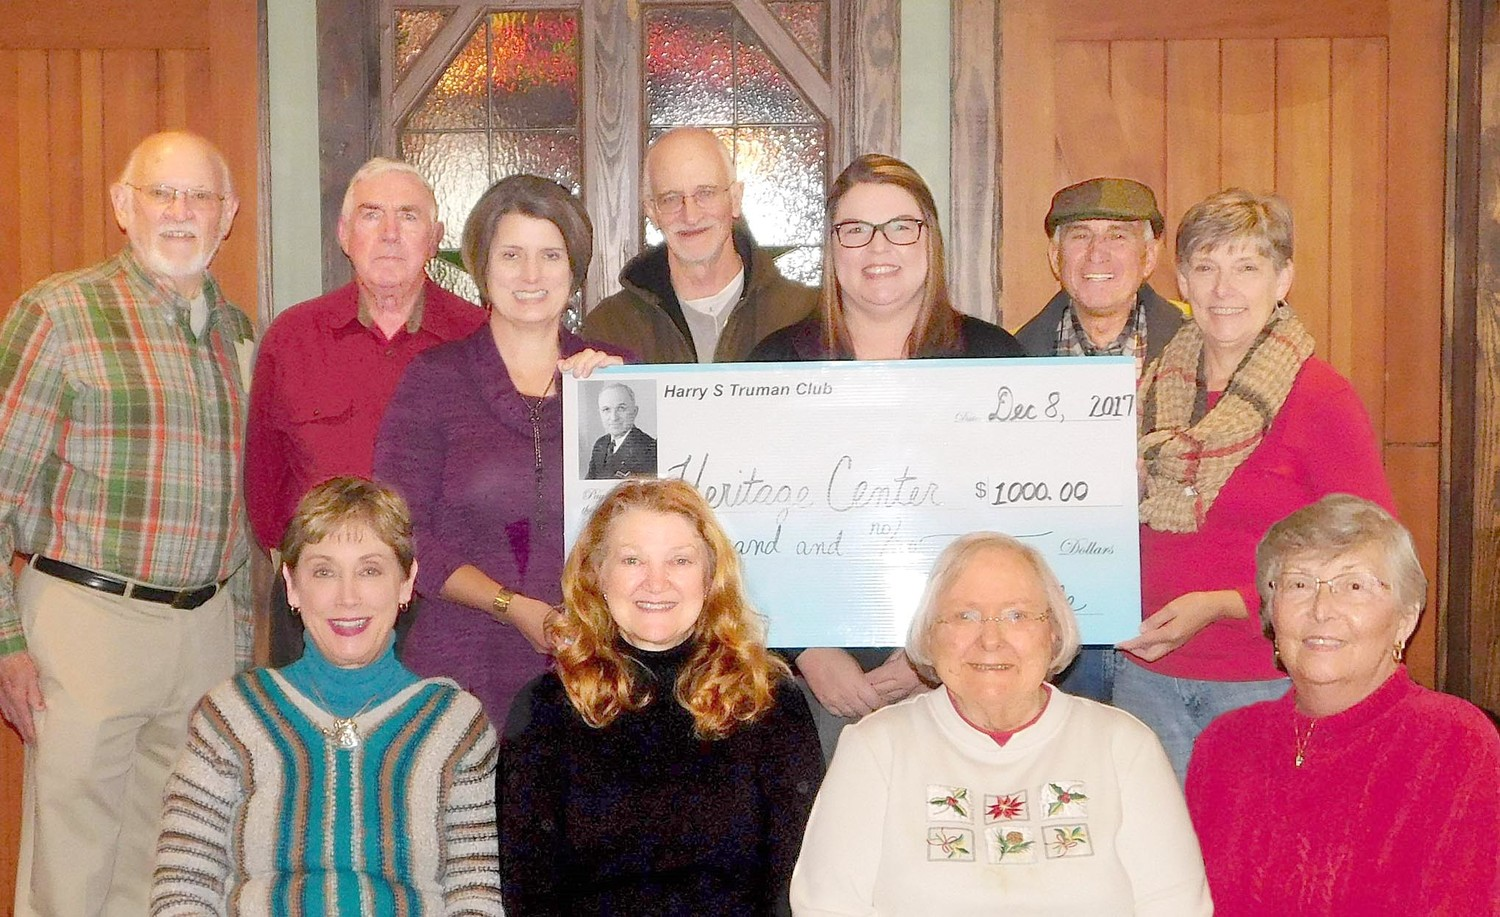 THE HARRY S. TRUMAN Club of Bradley County has donated $1,000 to the Hiwassee River Heritage Center in memory of Bob Hughes. Hughes, who served as Pike Road superintendent of Bradley County for years, was a prominent and highly respected member of the Charleston community. This gift by the Truman Club follows an earlier donation of $1,000 to support the purchase and renovation of the Heritage Center building. Seated, from left, are Sally Love, Cindy Logan, Mary Guthrie and Carol Beck; standing, Doug Pirkle, Mike Callaway, Ginger Wilson Buchanan, Bob Hughes' daughter, Bobbie Jo Henry, Zane Harris and Darlene Goins, Heritage Center manager.